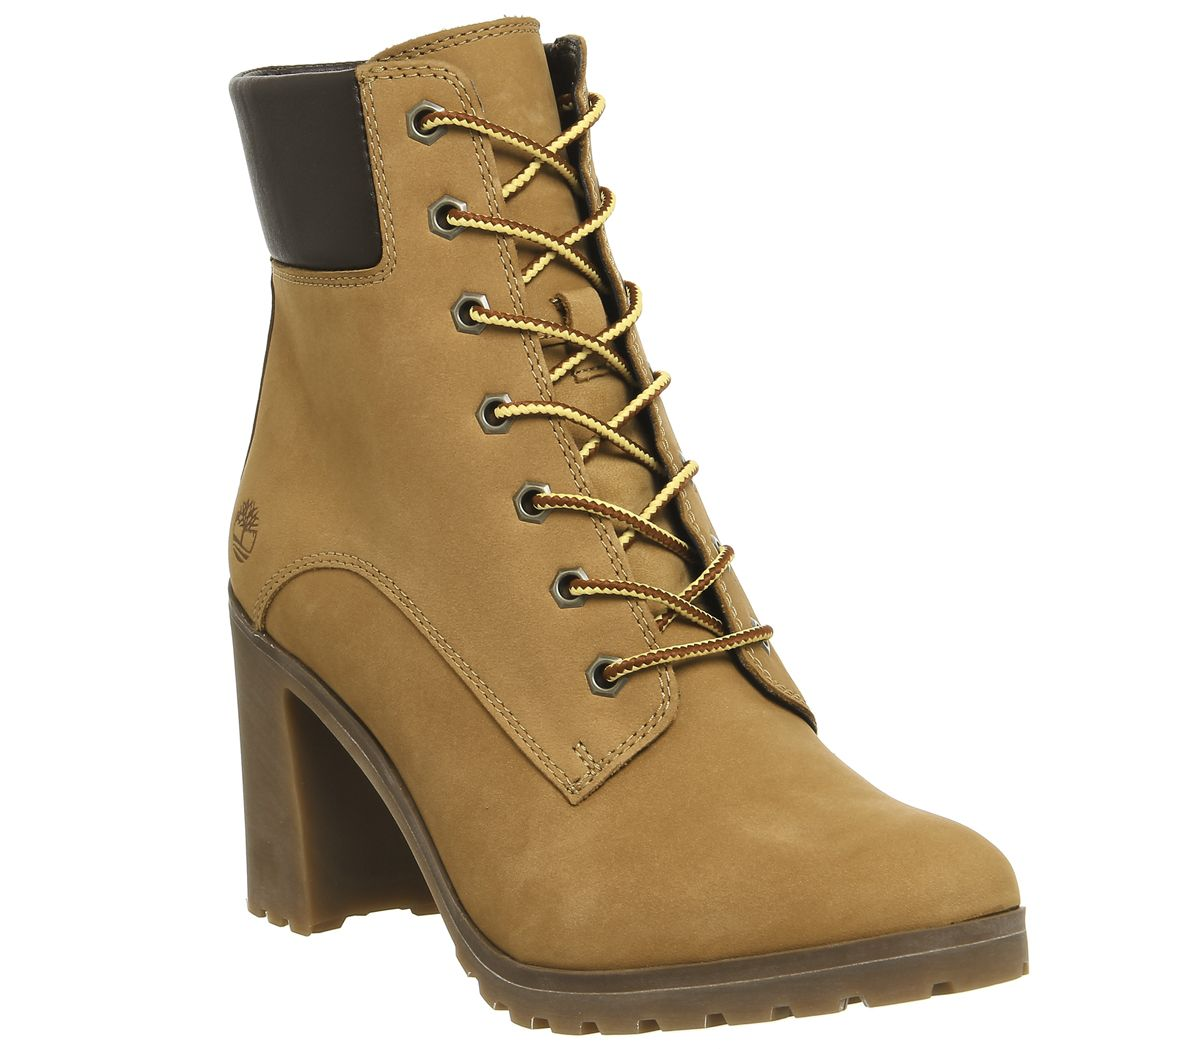 a06a94bebcc Timberland Allington 6 Inch Lace Boots Wheat - Ankle Boots